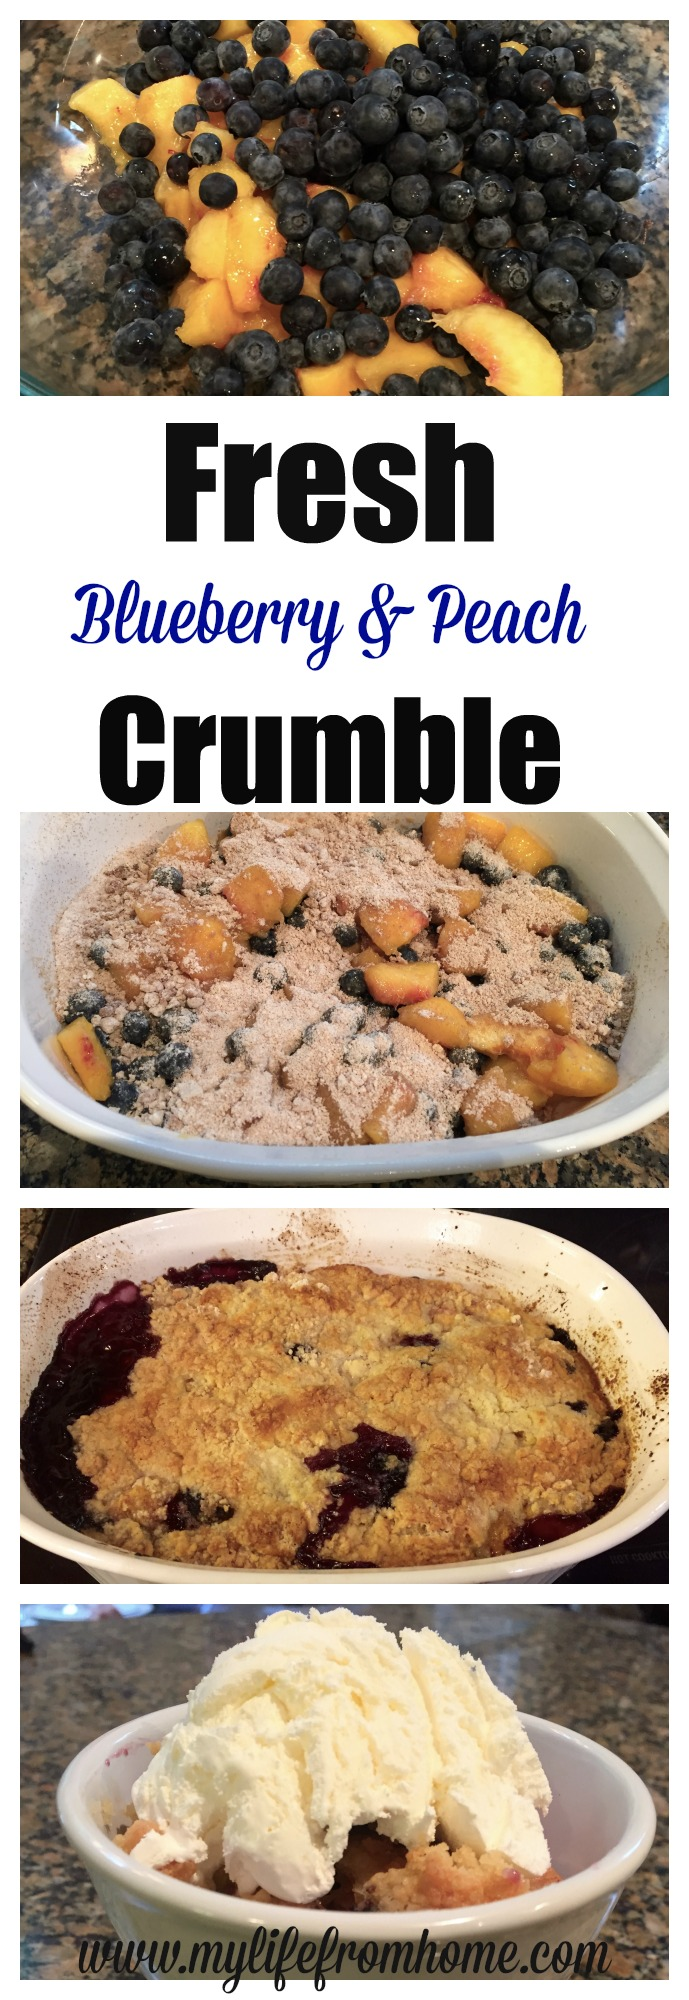 Fresh Blueberry & Peach Crumble recipe by www.mylifefromhome.com